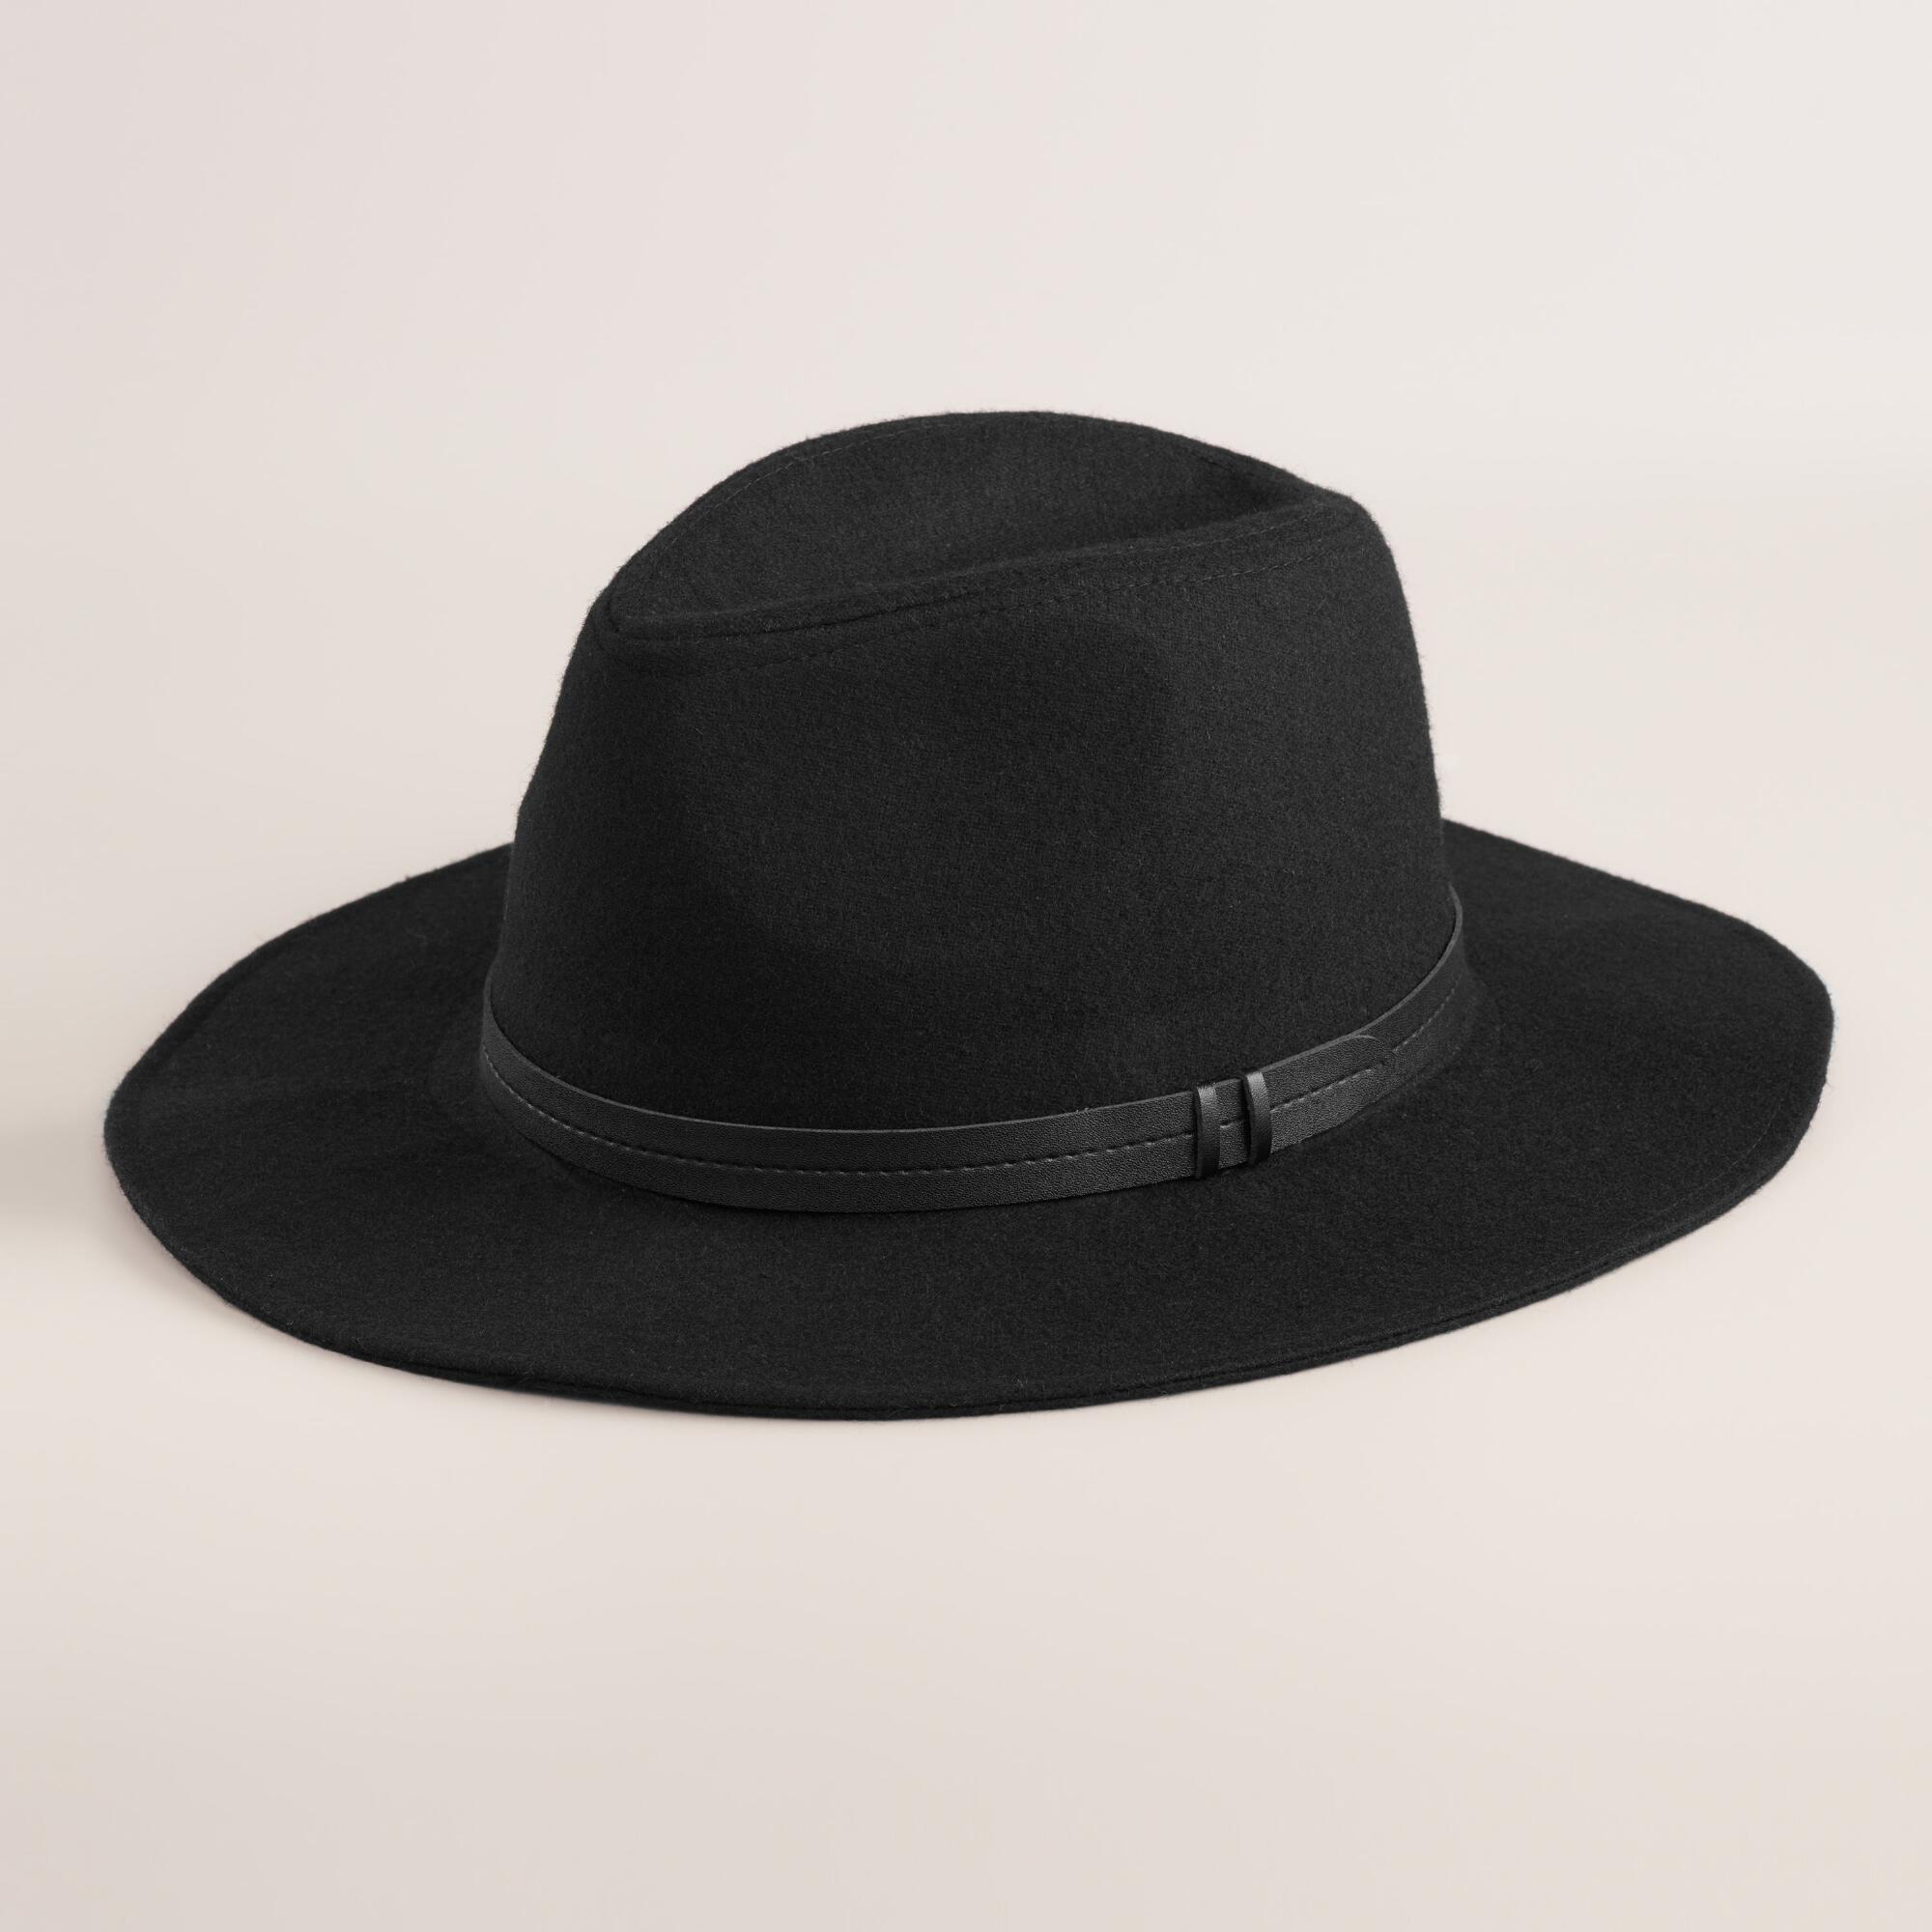 LADIES WIDE BRIM FELT FEDORA W/CONTRAST GROSGRAIN BAND F ladies wide brim felt fedora with contrast grossgrain band style: F material: % wool felt 12 pcs assorted color pack: black/black 5, black/red 2, charcoal/pink 3, burgundy/black 2 size: one (adjustable drawstring band) minimum order: 12 pc price per dozen.